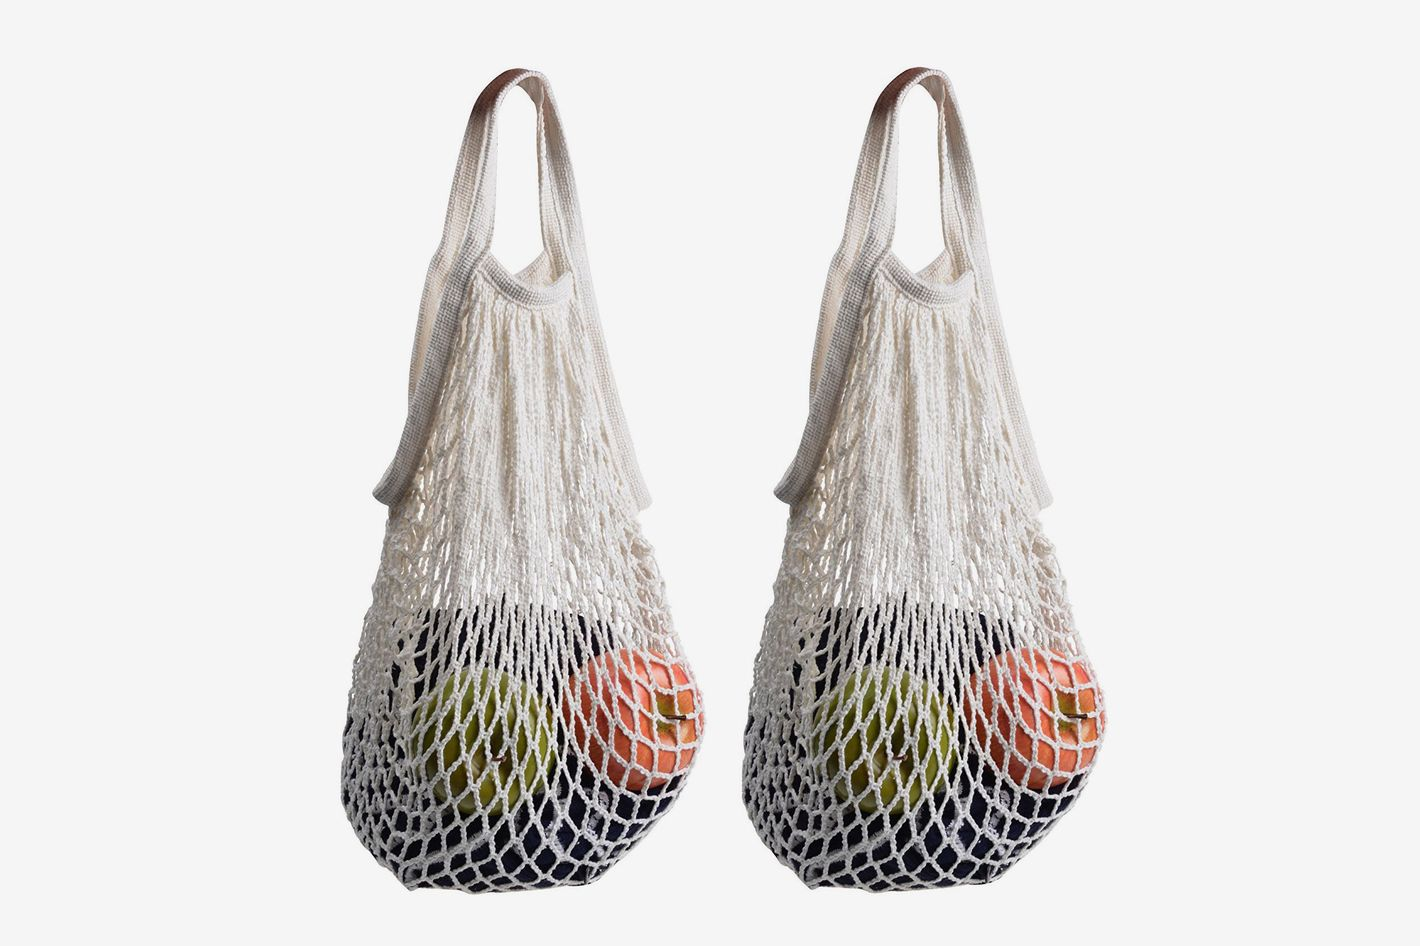 65609825dba Stoncel Pack of 2 Cotton Net Shopping Tote